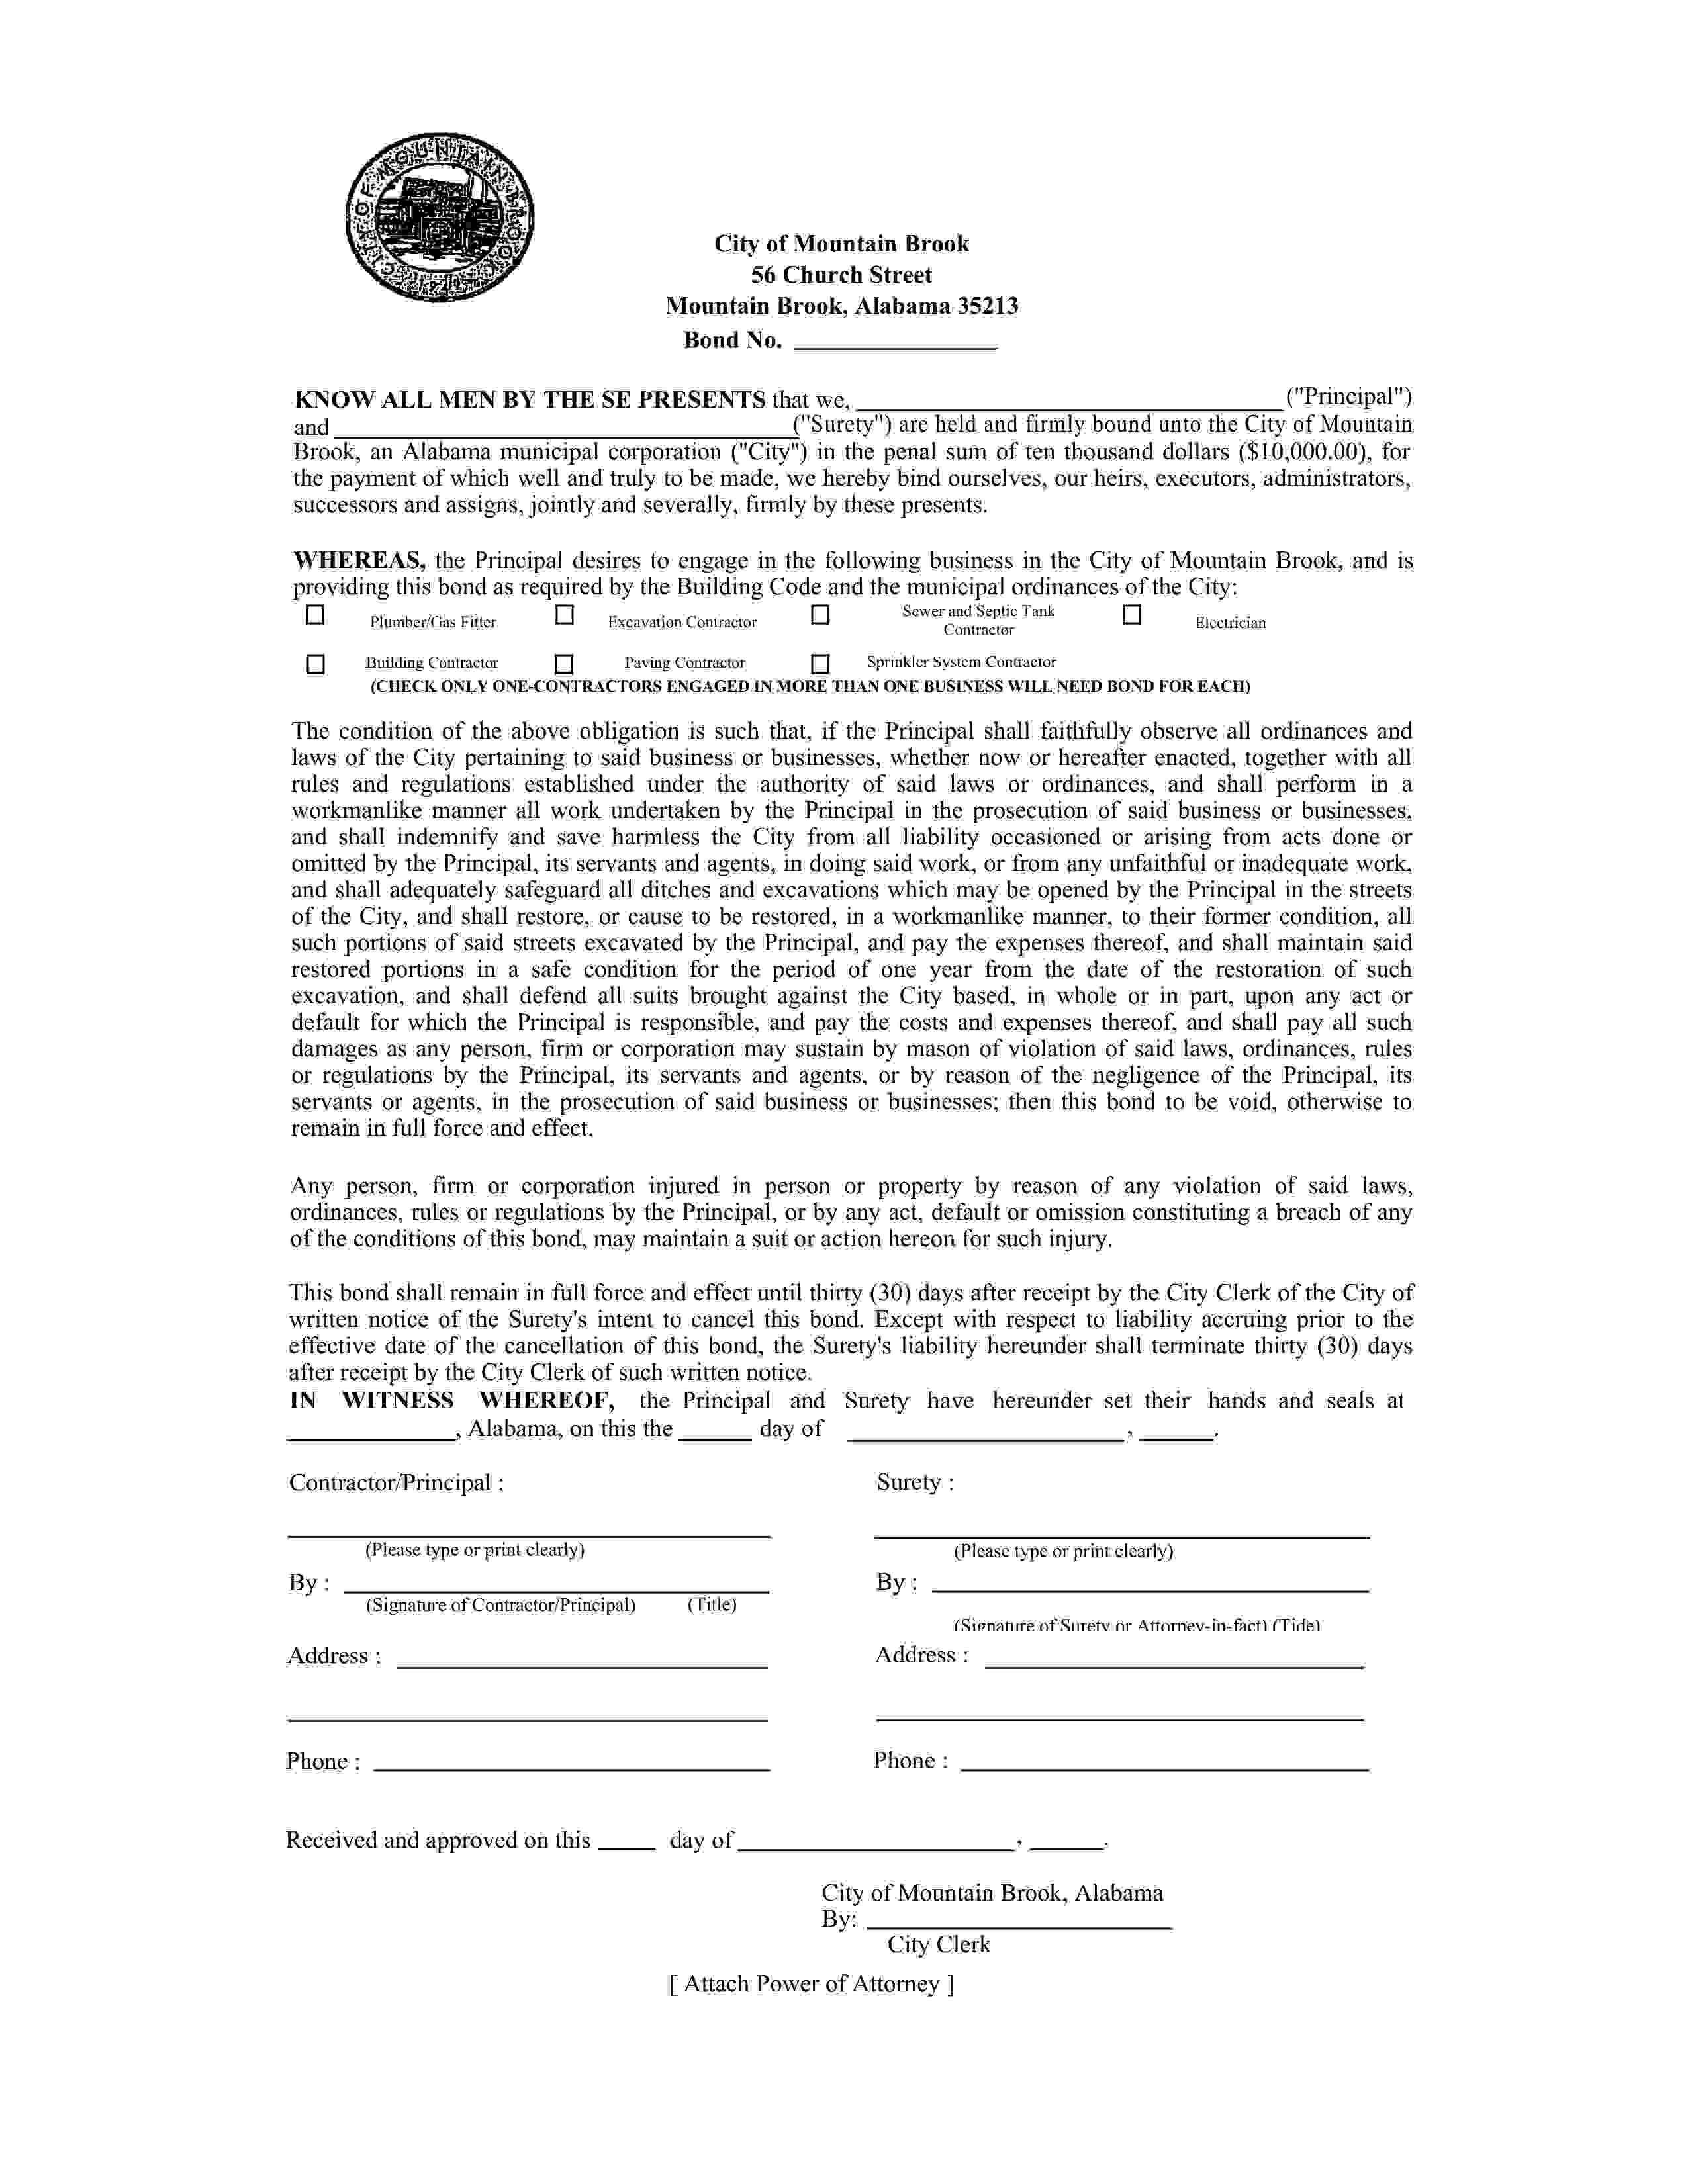 City of Mountain Brook Sewer and Septic Tank Contractor Bond sample image